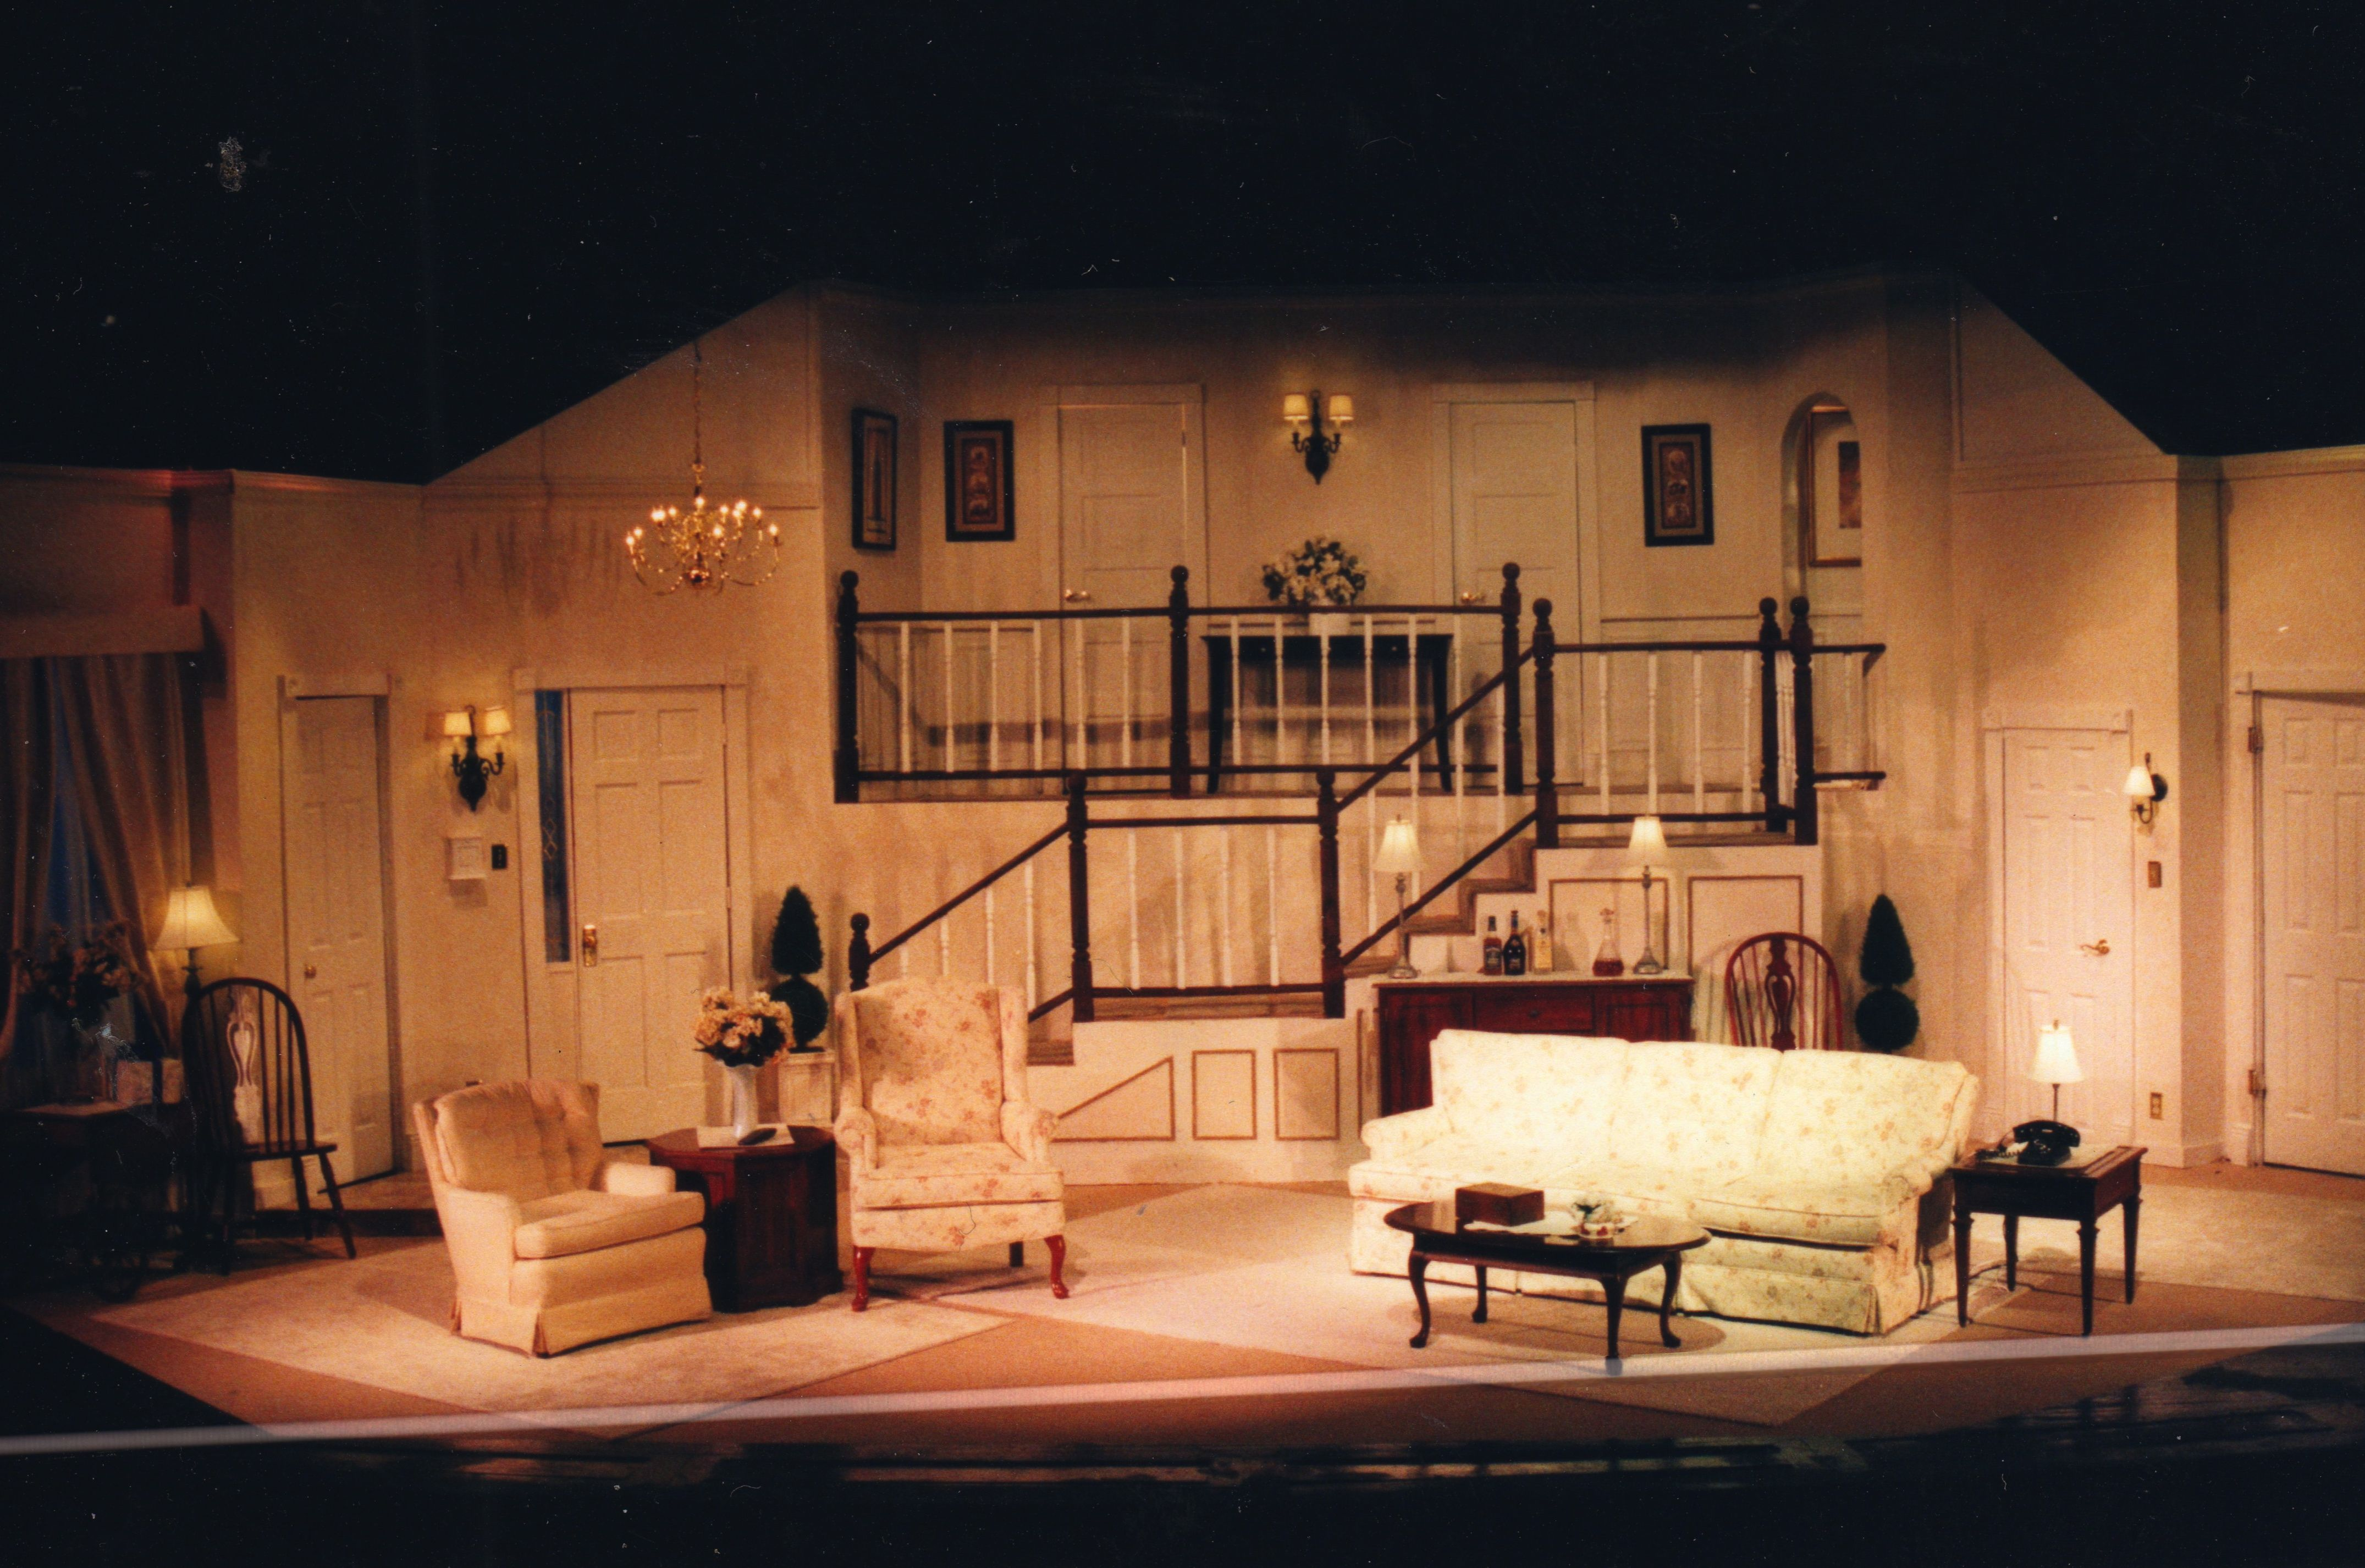 Rumors by Neil Simon Set Design and execution by Martin W